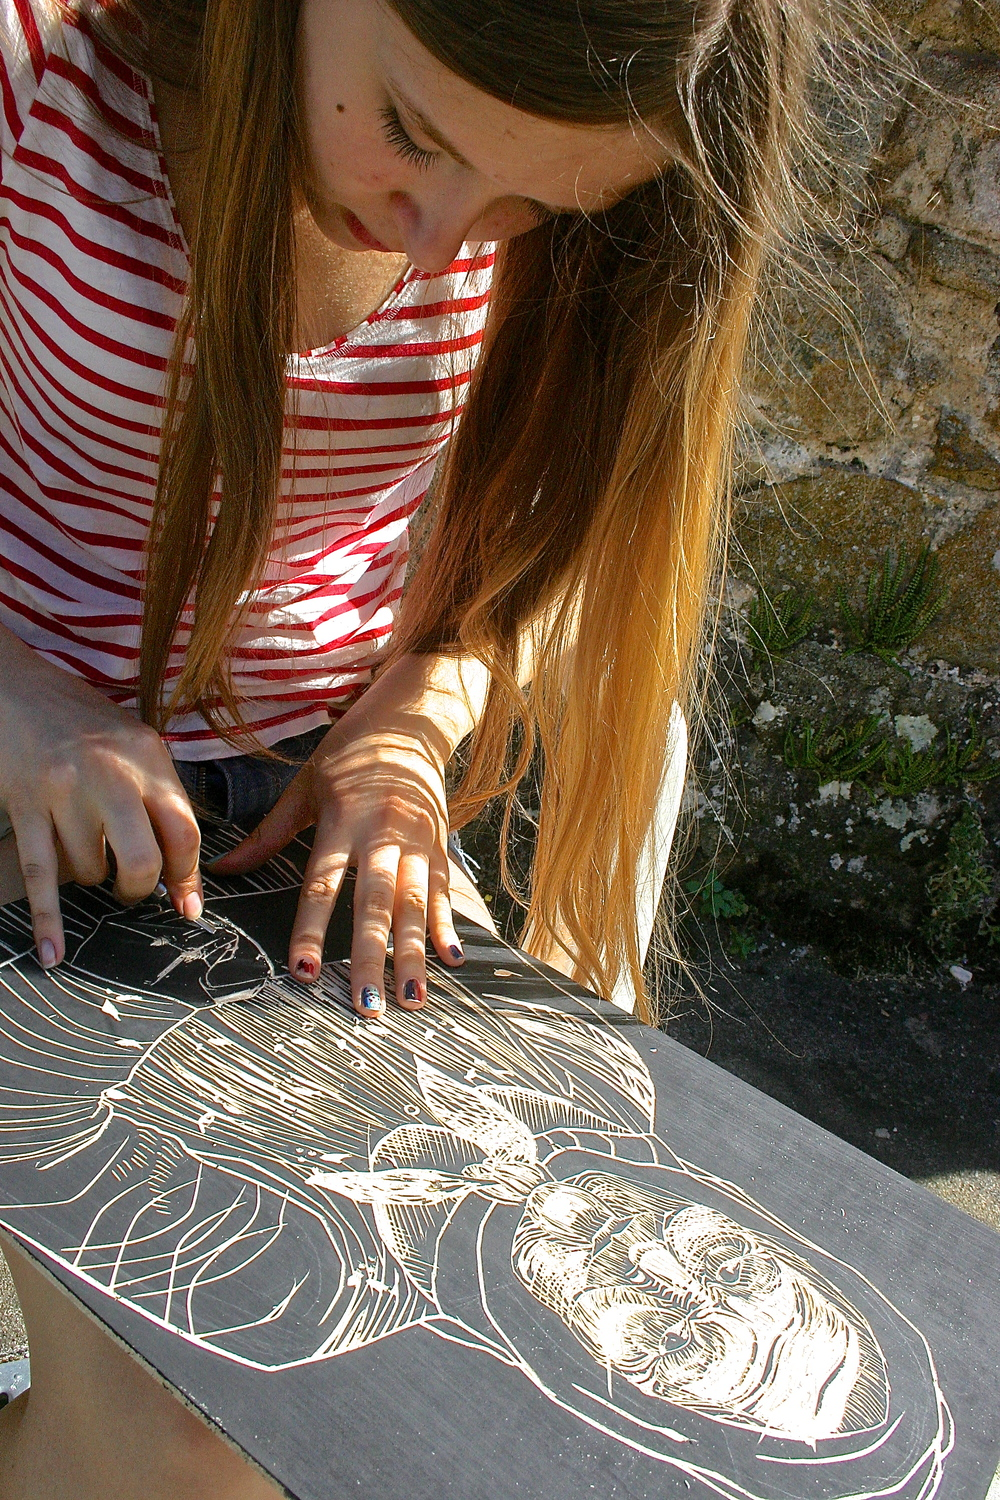 a printmaking student working on a wood block print at les tapies